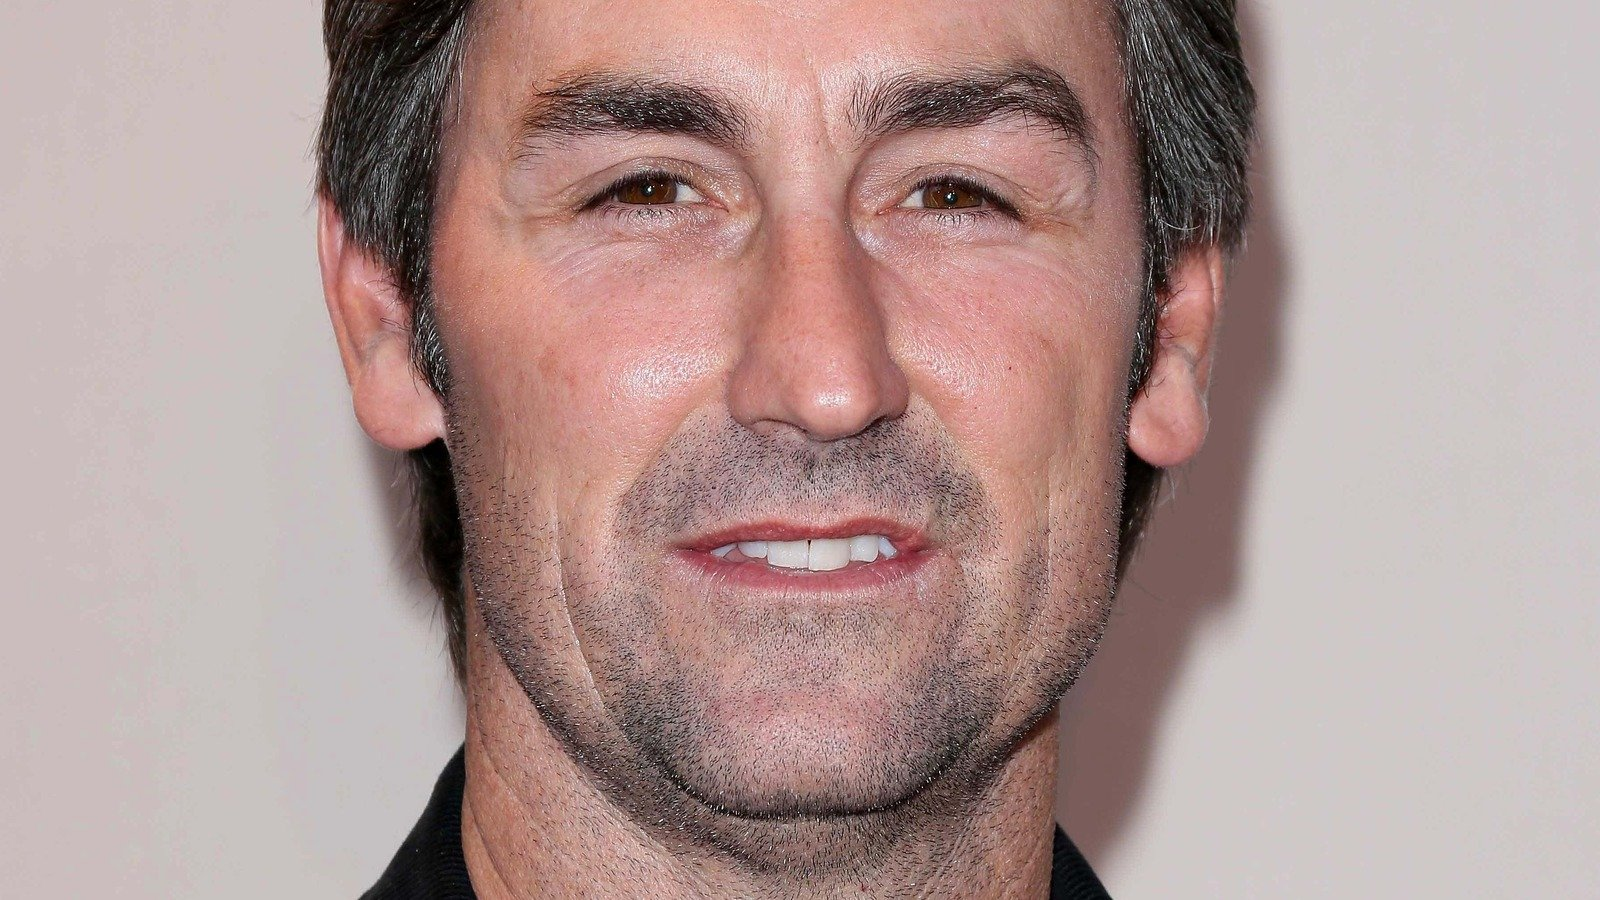 Here's How Much Mike Wolfe From American Pickers Is Really Worth